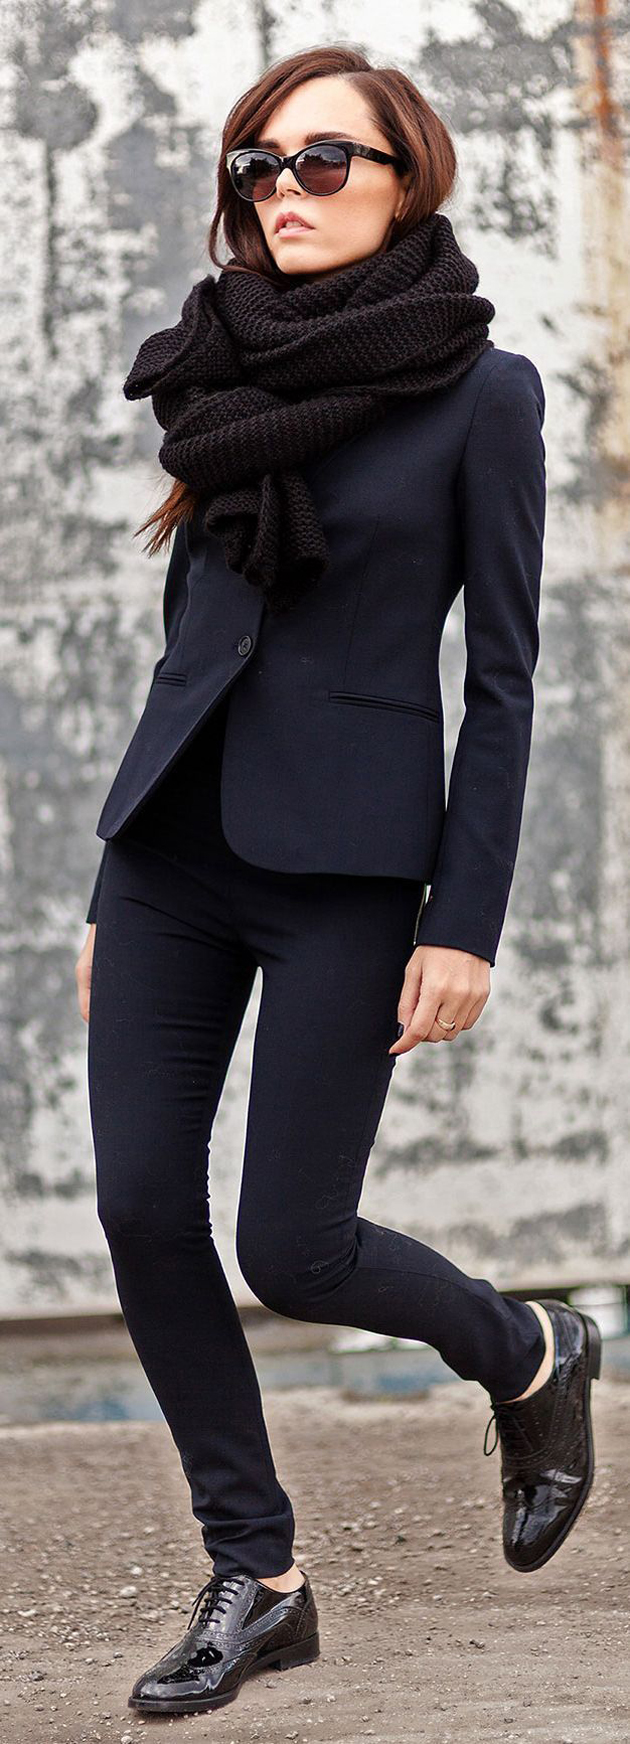 woman wearing a great black suit to office